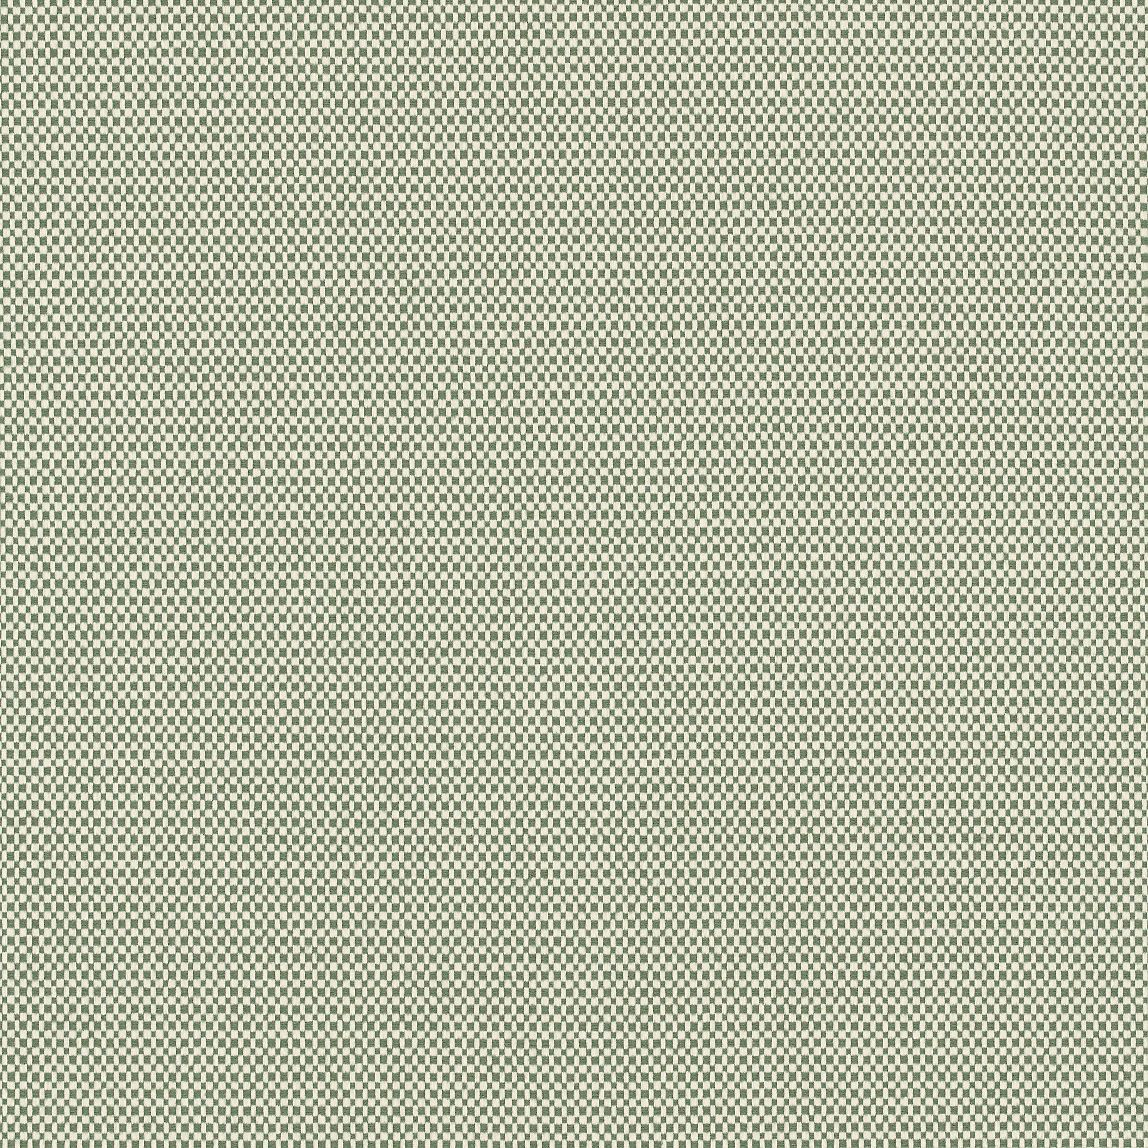 Square One Grasshopper Swatch